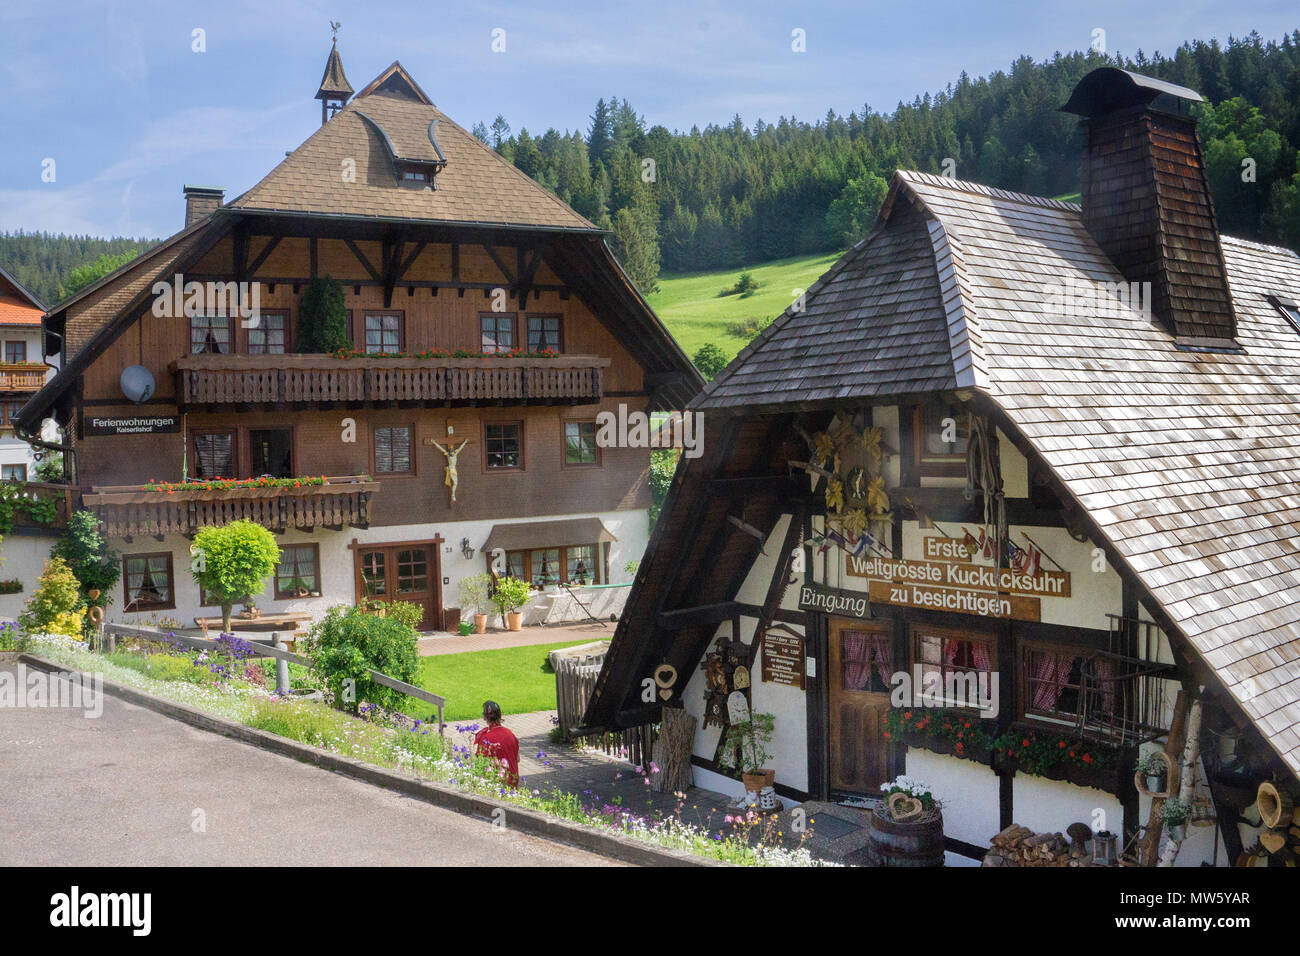 Typical Black forest houses at Schonach village, Black Forest, Baden-Wuerttemberg, Germany, Europe - Stock Image